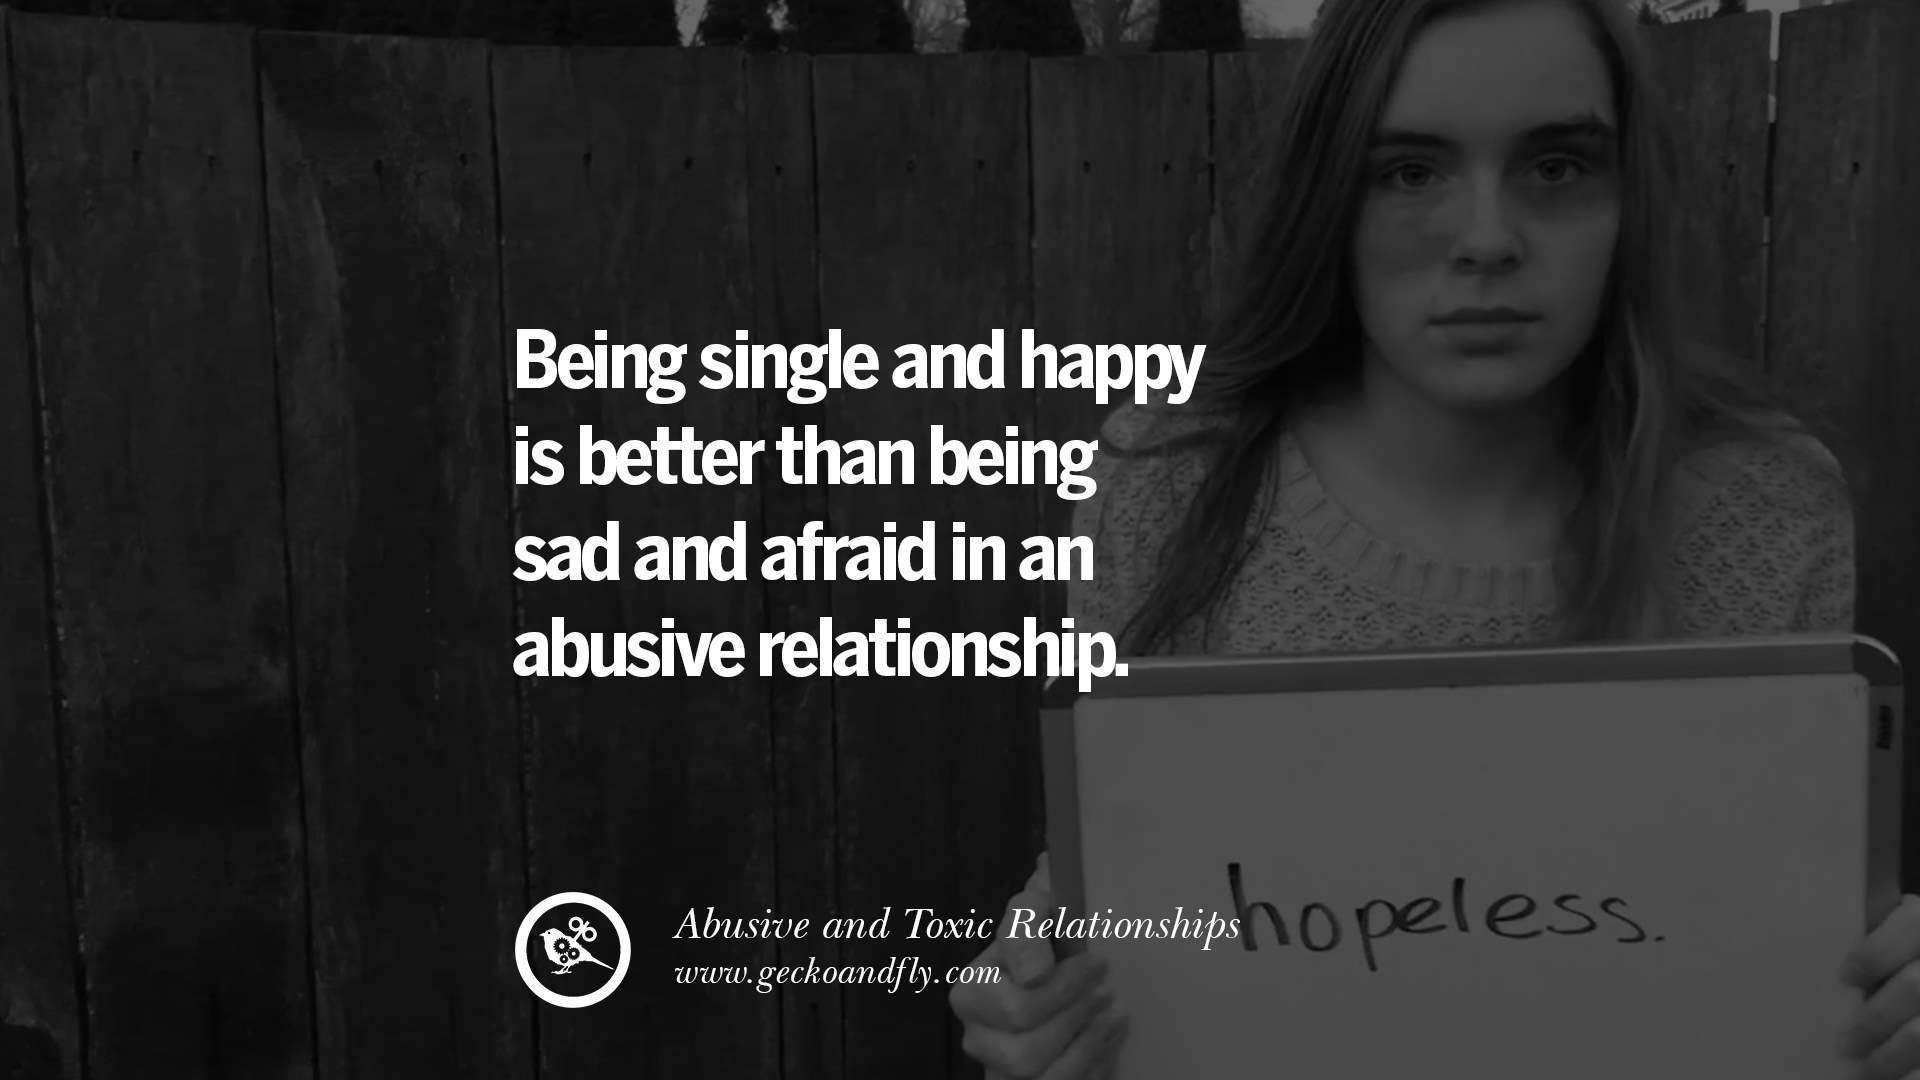 abusive dating relationships Abusive relationships can damage a life,  one in three teens will experience physical, verbal, sexual, or emotional abuse in a dating relationship (reece.